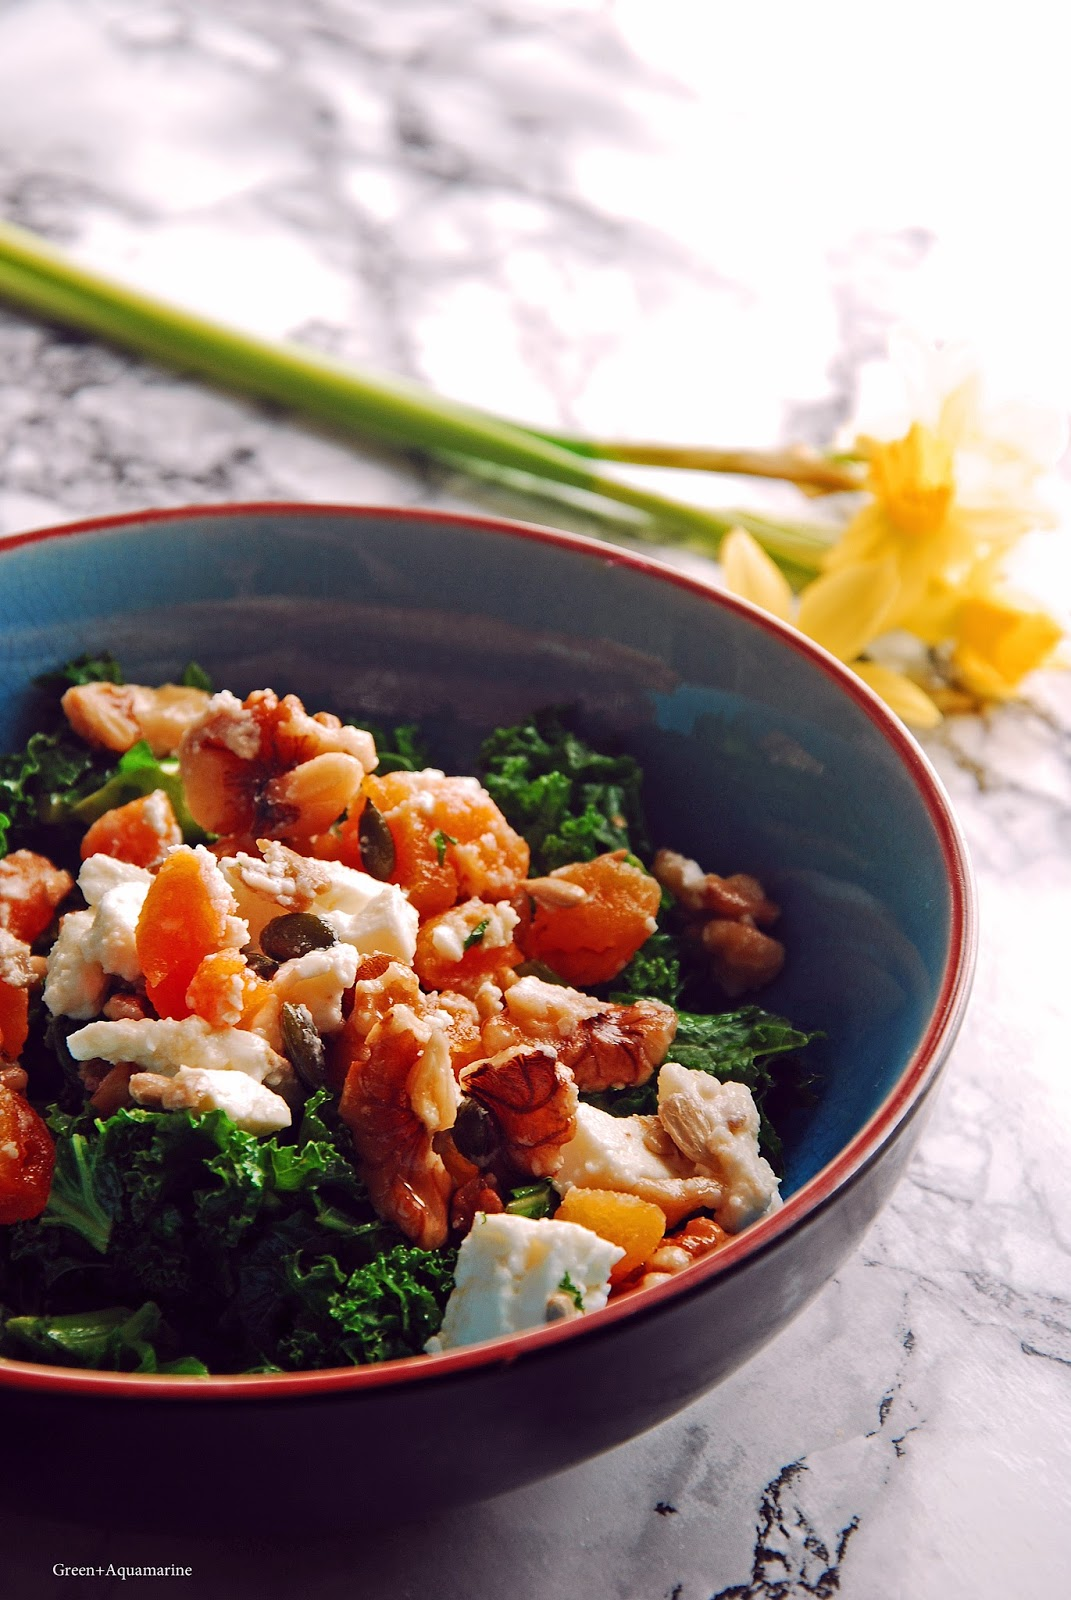 Make use of in-season kale in this omega fats-rich salad this lunchtime. Via @eleanormayc